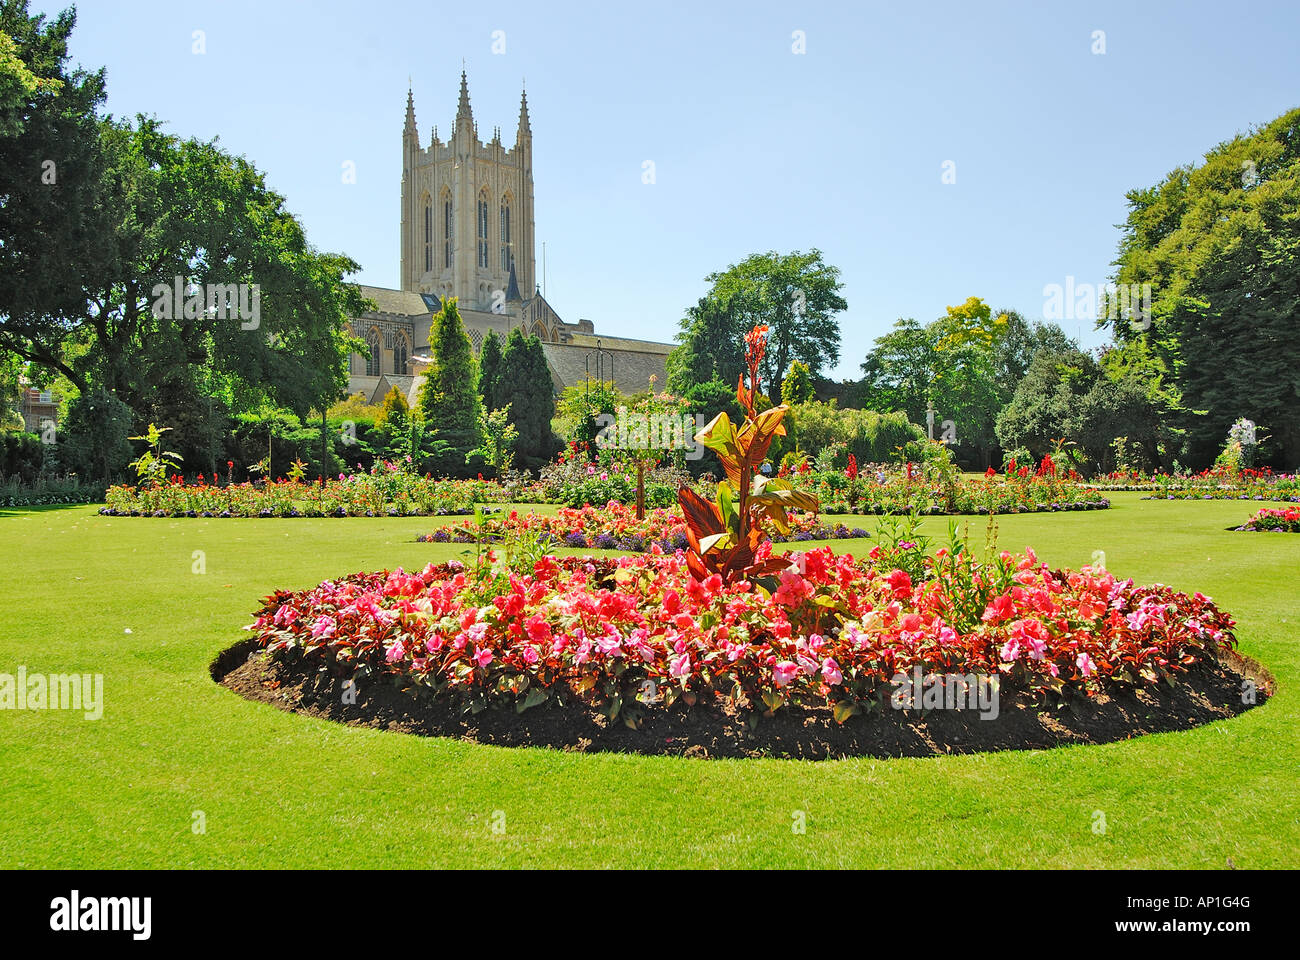 Cathedral and gardens, Bury St Edmunds, Suffolk, UK - Stock Image